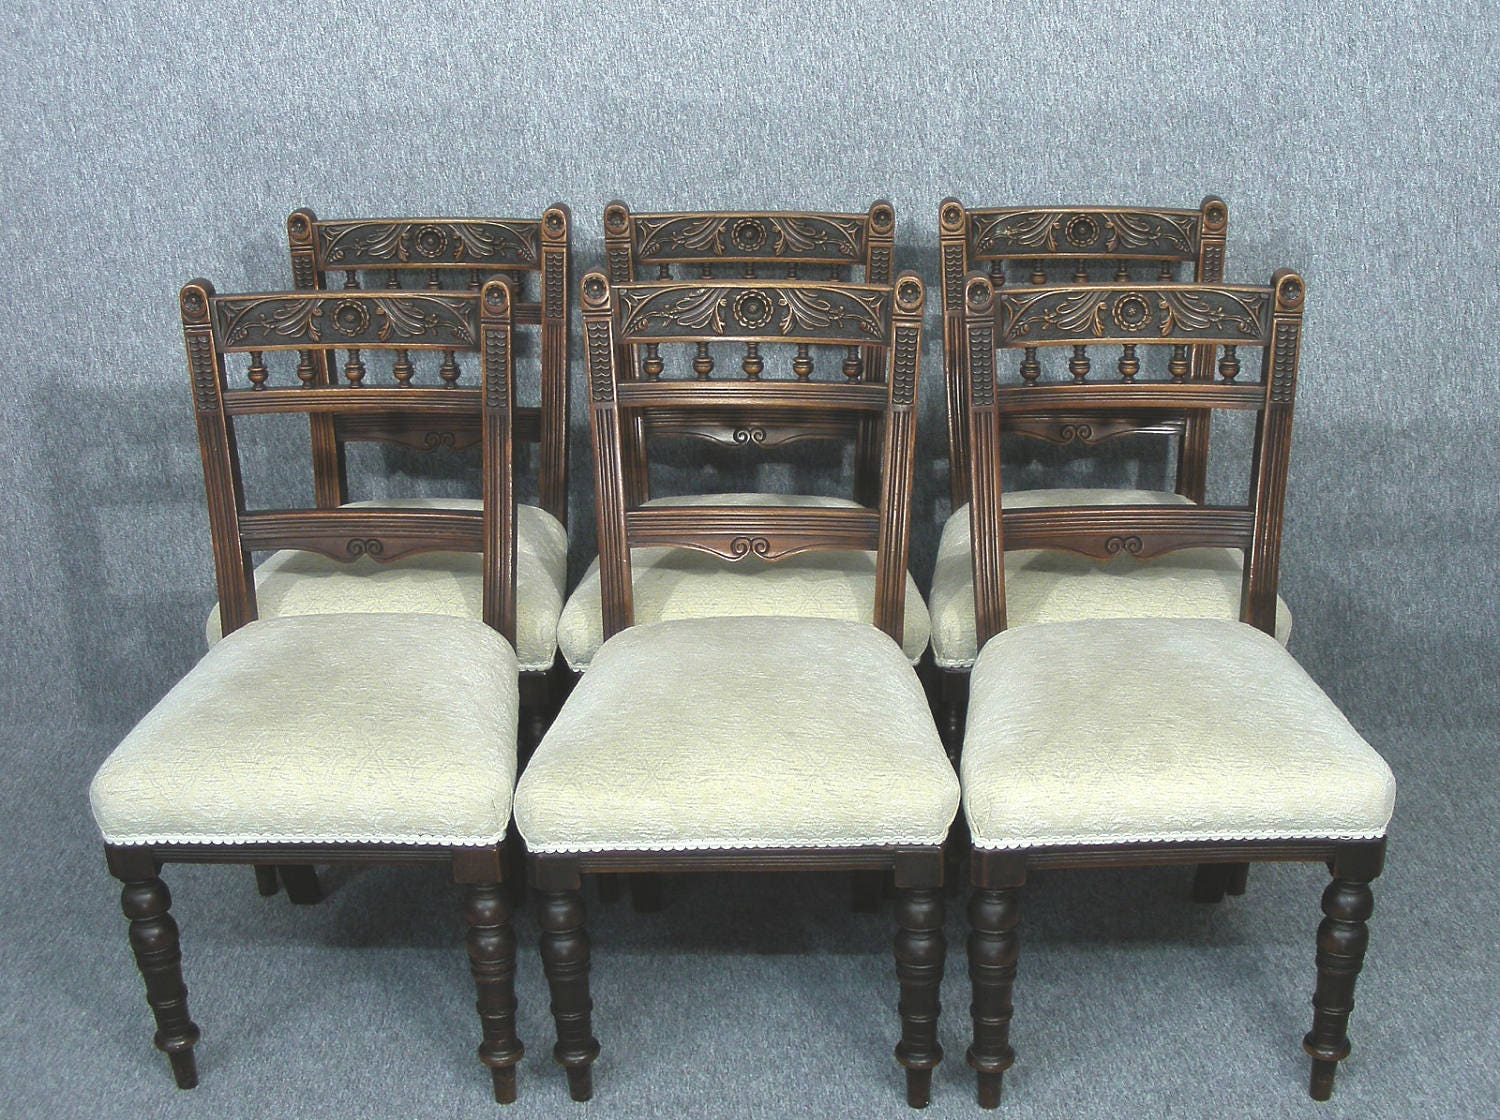 Dining Chairs Set Of 6 Antique Carved Dining Chairs  Matching Armchairs listed Separately